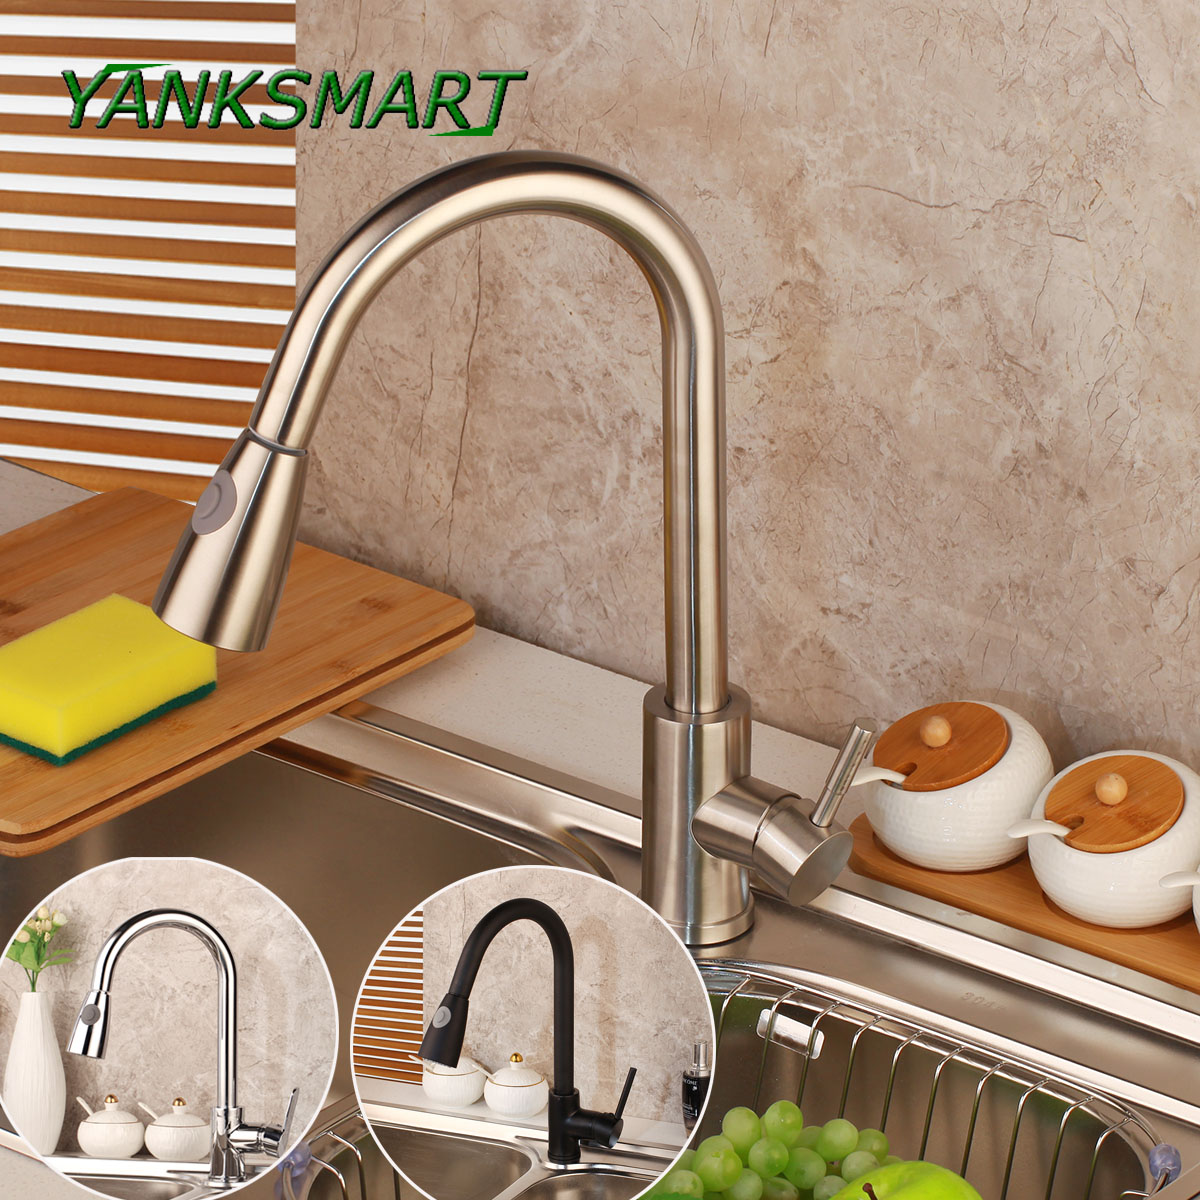 YANKSMART Brushed Nickel Kitchen Sink Mixer Taps Single Lever Pull Out Kitchen Faucet Dual Sprayer Functions Shower Head-in Kitchen Faucets from Home Improvement    1